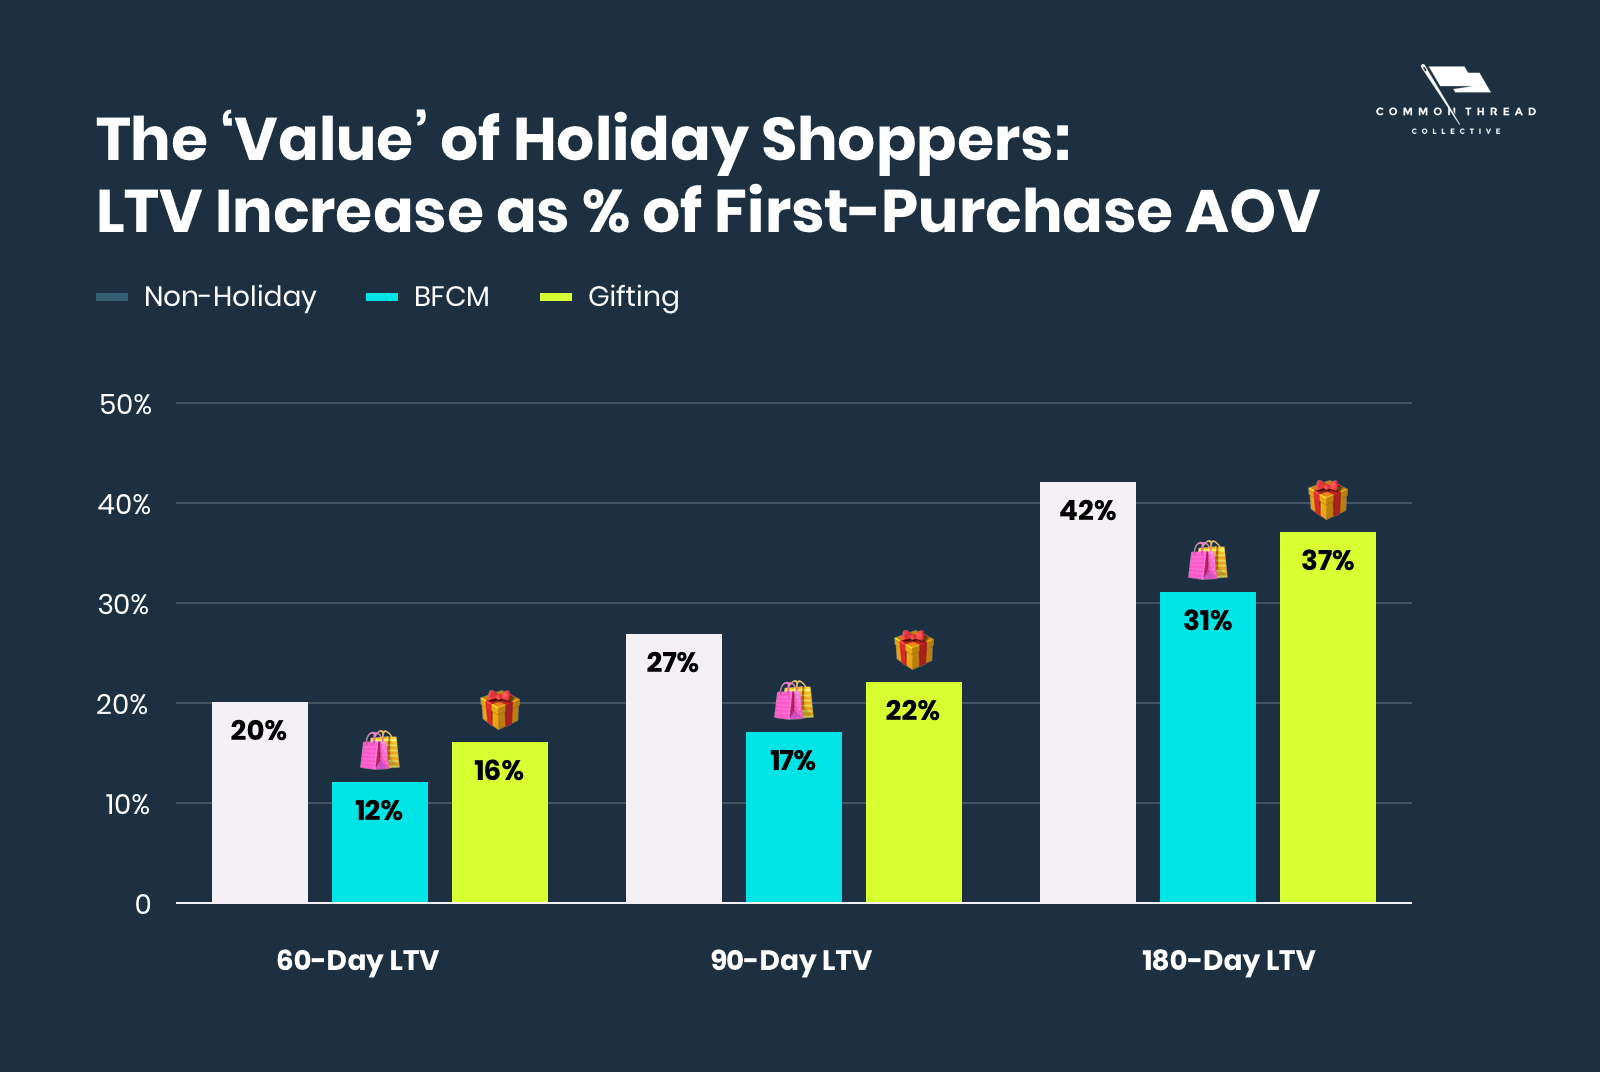 The 'Value' of Holiday Shoppers: LTV increase as a percent of first-purchase AOV